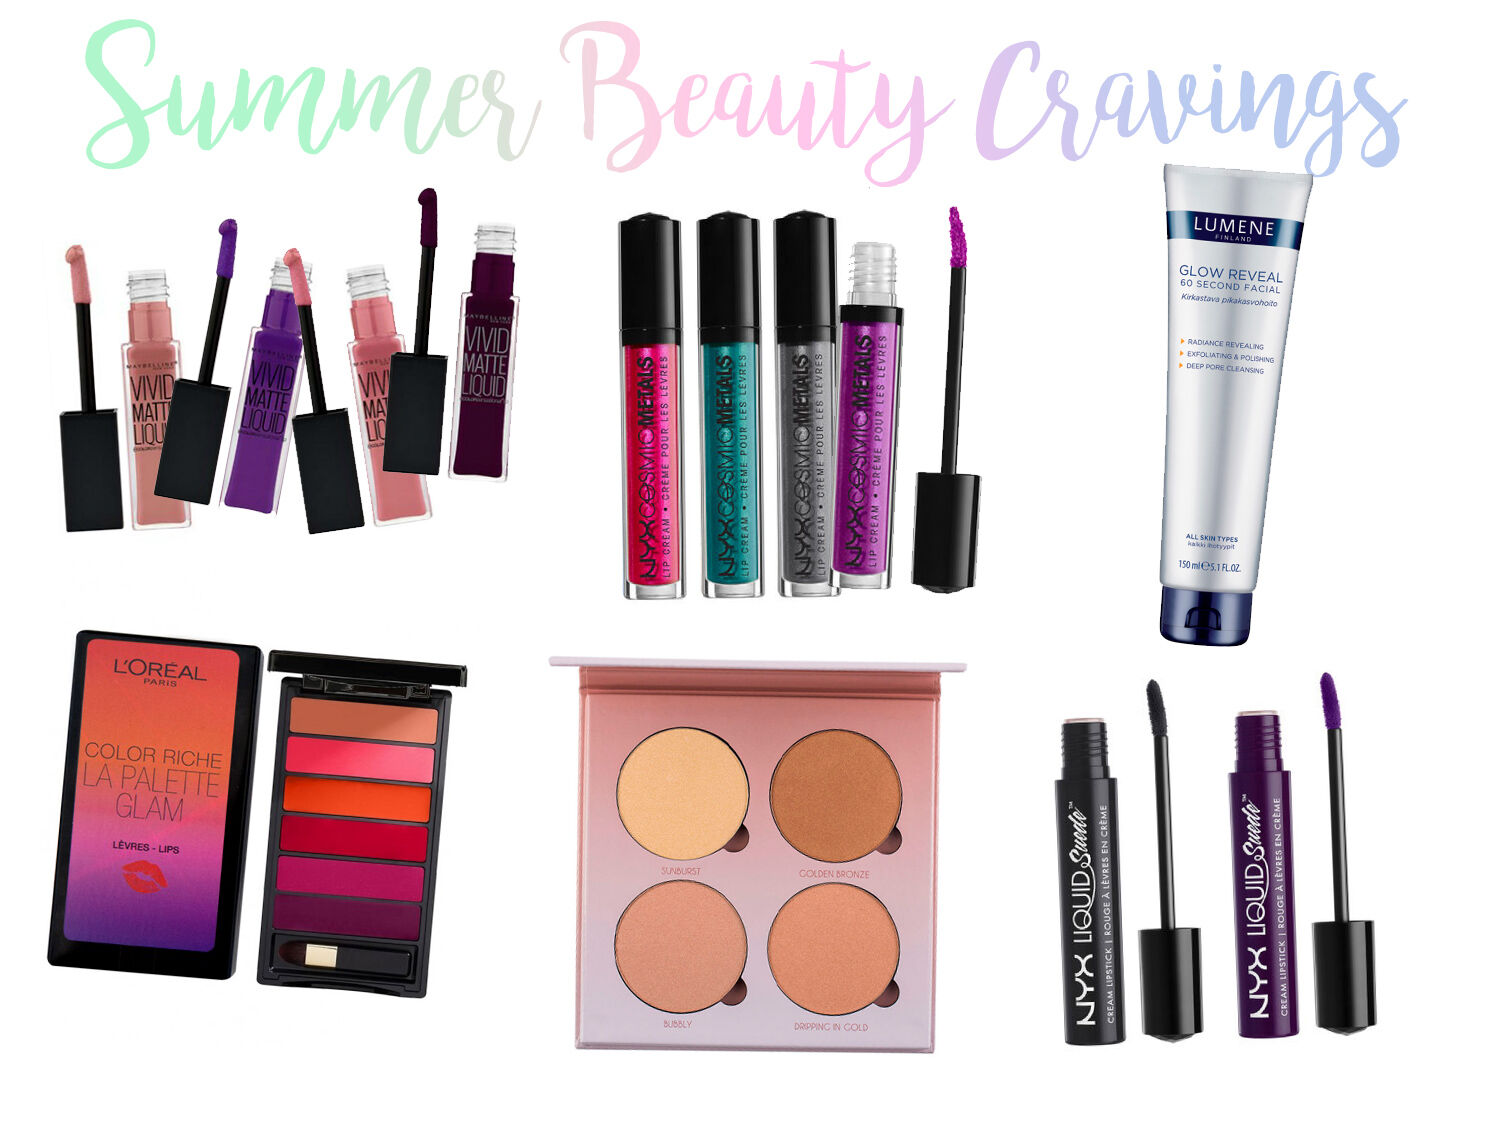 summer babe beauty cravings v.26